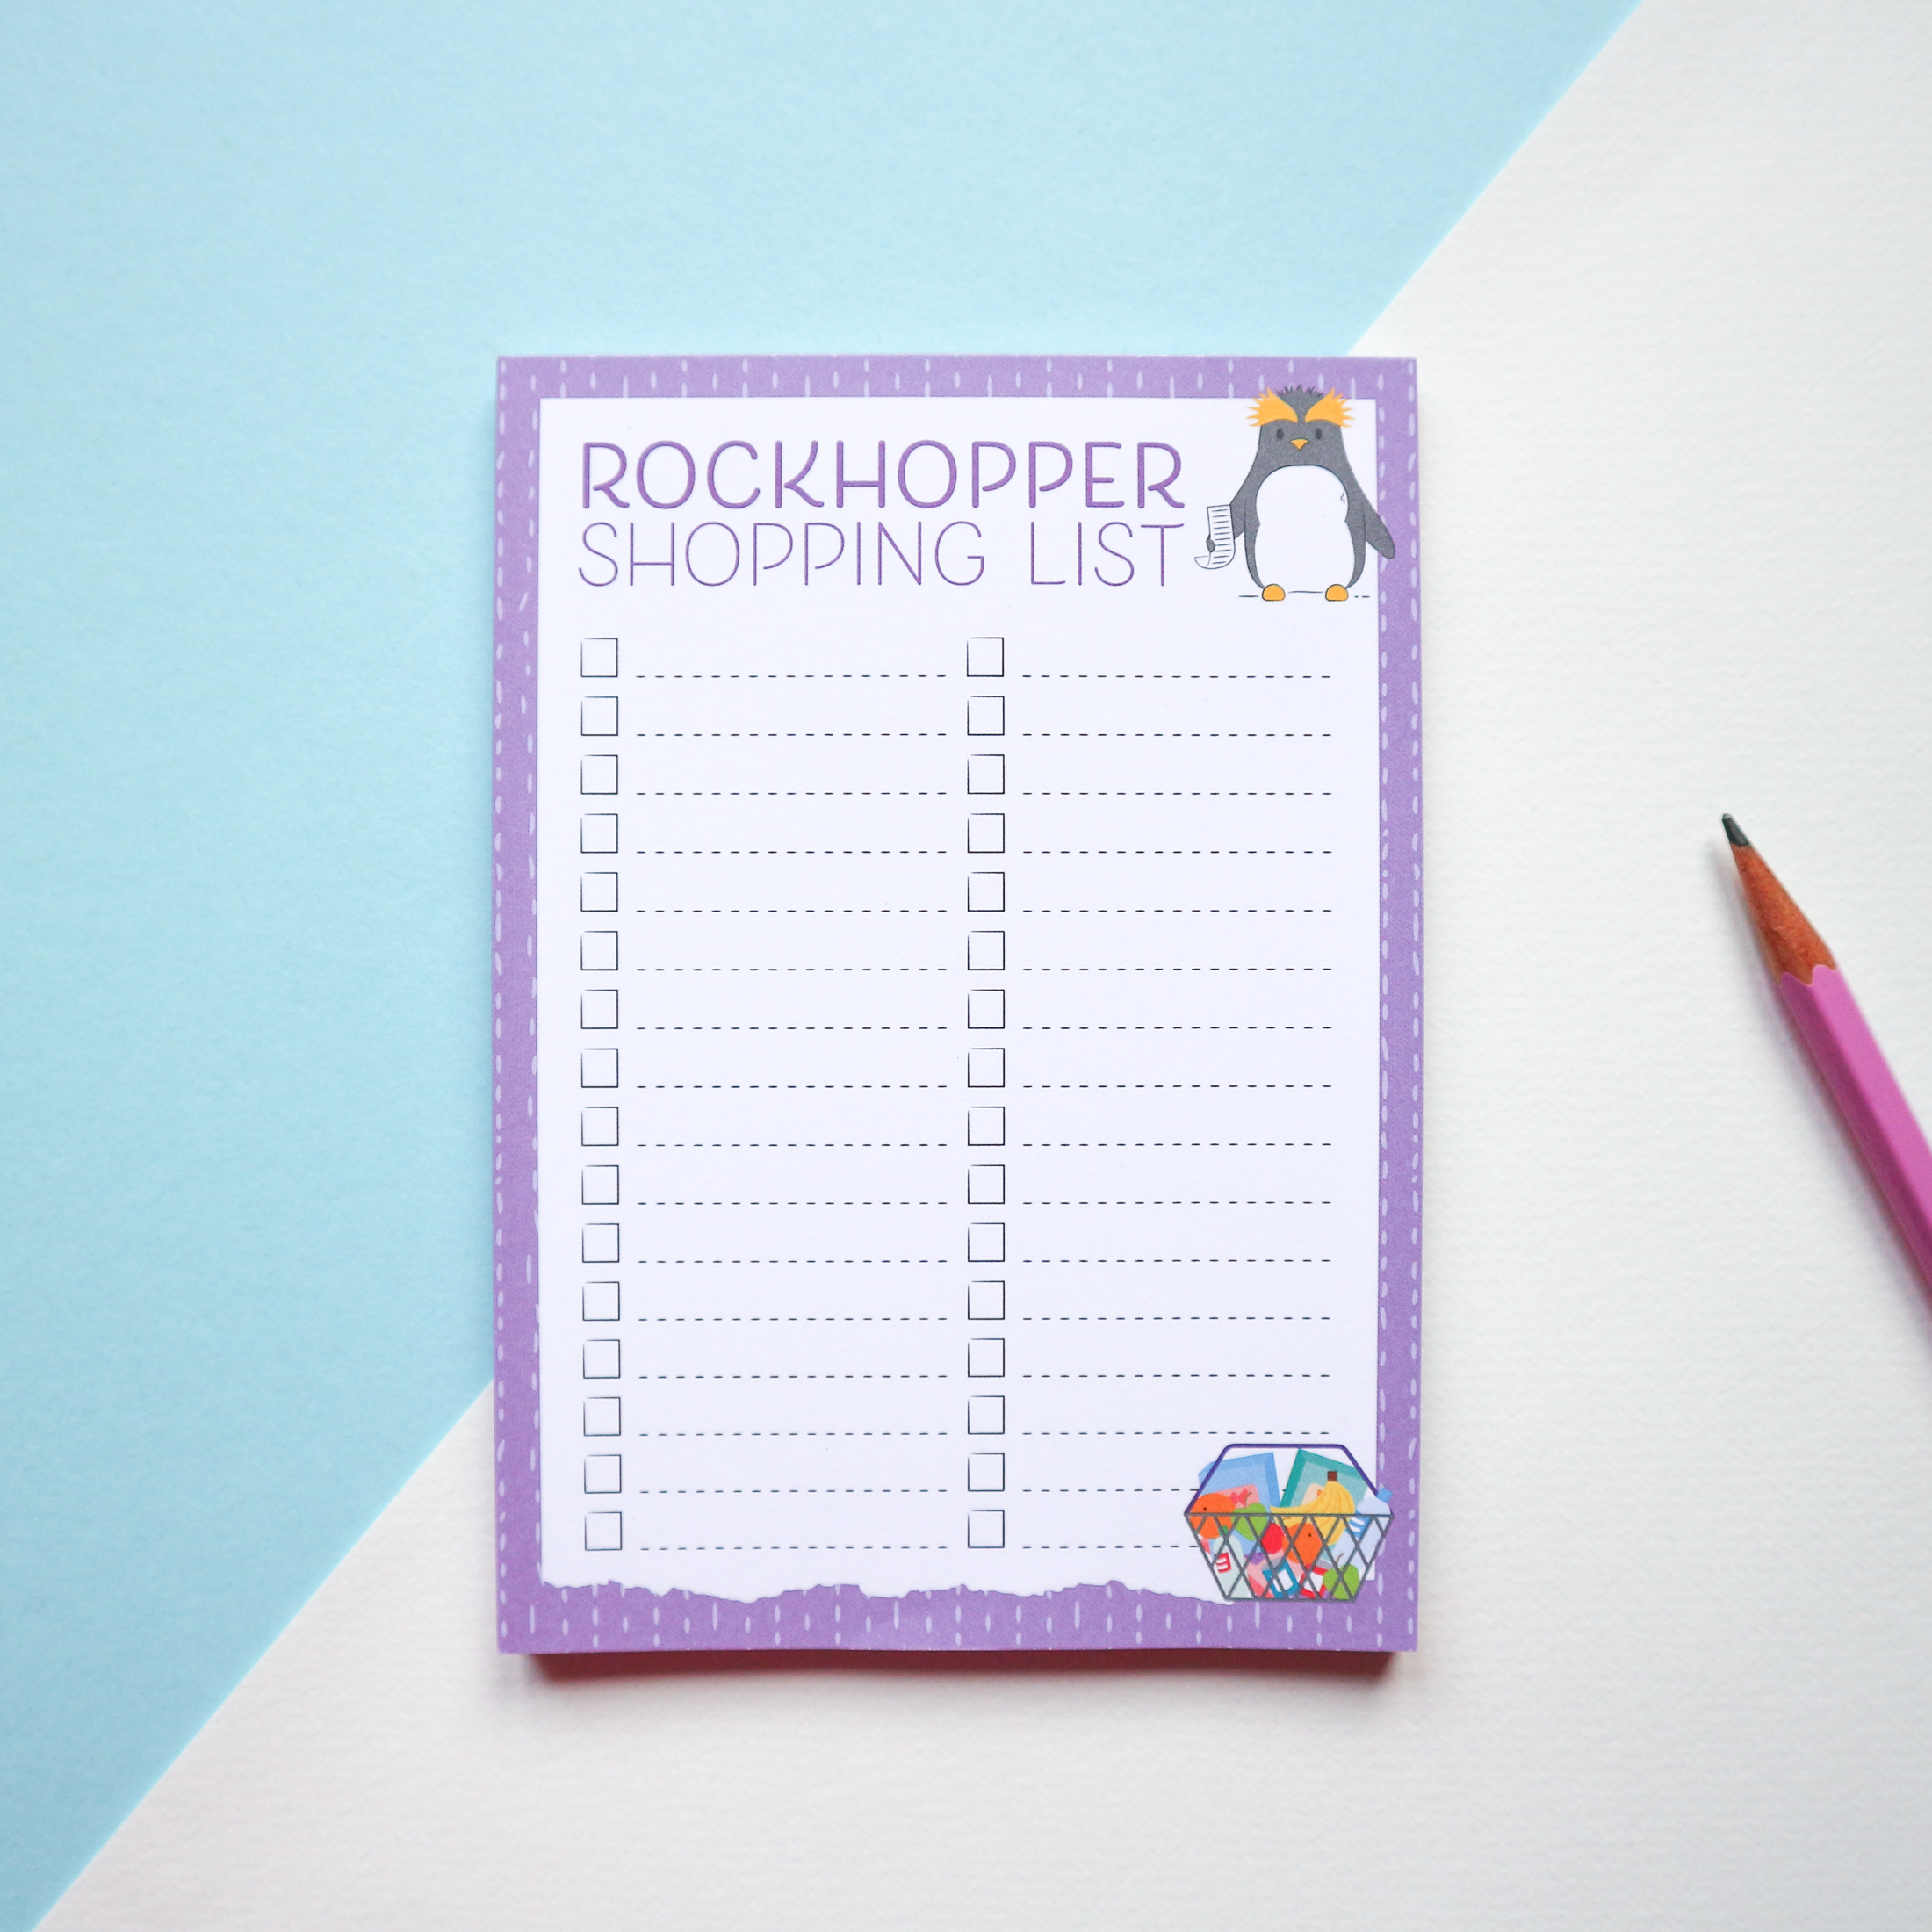 "a penguin-themed shopping list called the ""Rockhopper Shopping List"" showing an illustration of a penguin with a shopping list and a basket of shopping in the corner. Styled with a pink pencil on a blue and white background."